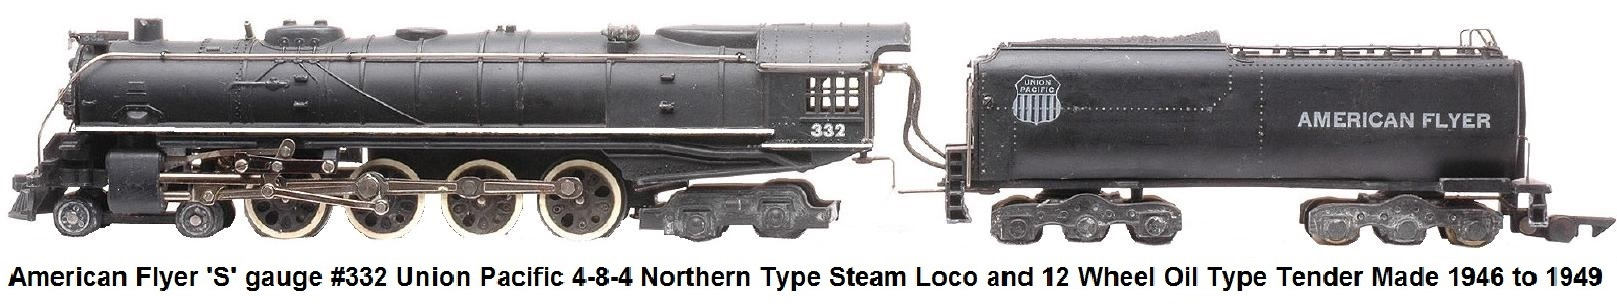 3/16 Scale (S-Scale) Vintage American Flyer #332 Union Pacific 4-8-4 steam loco and 12 wheel tender